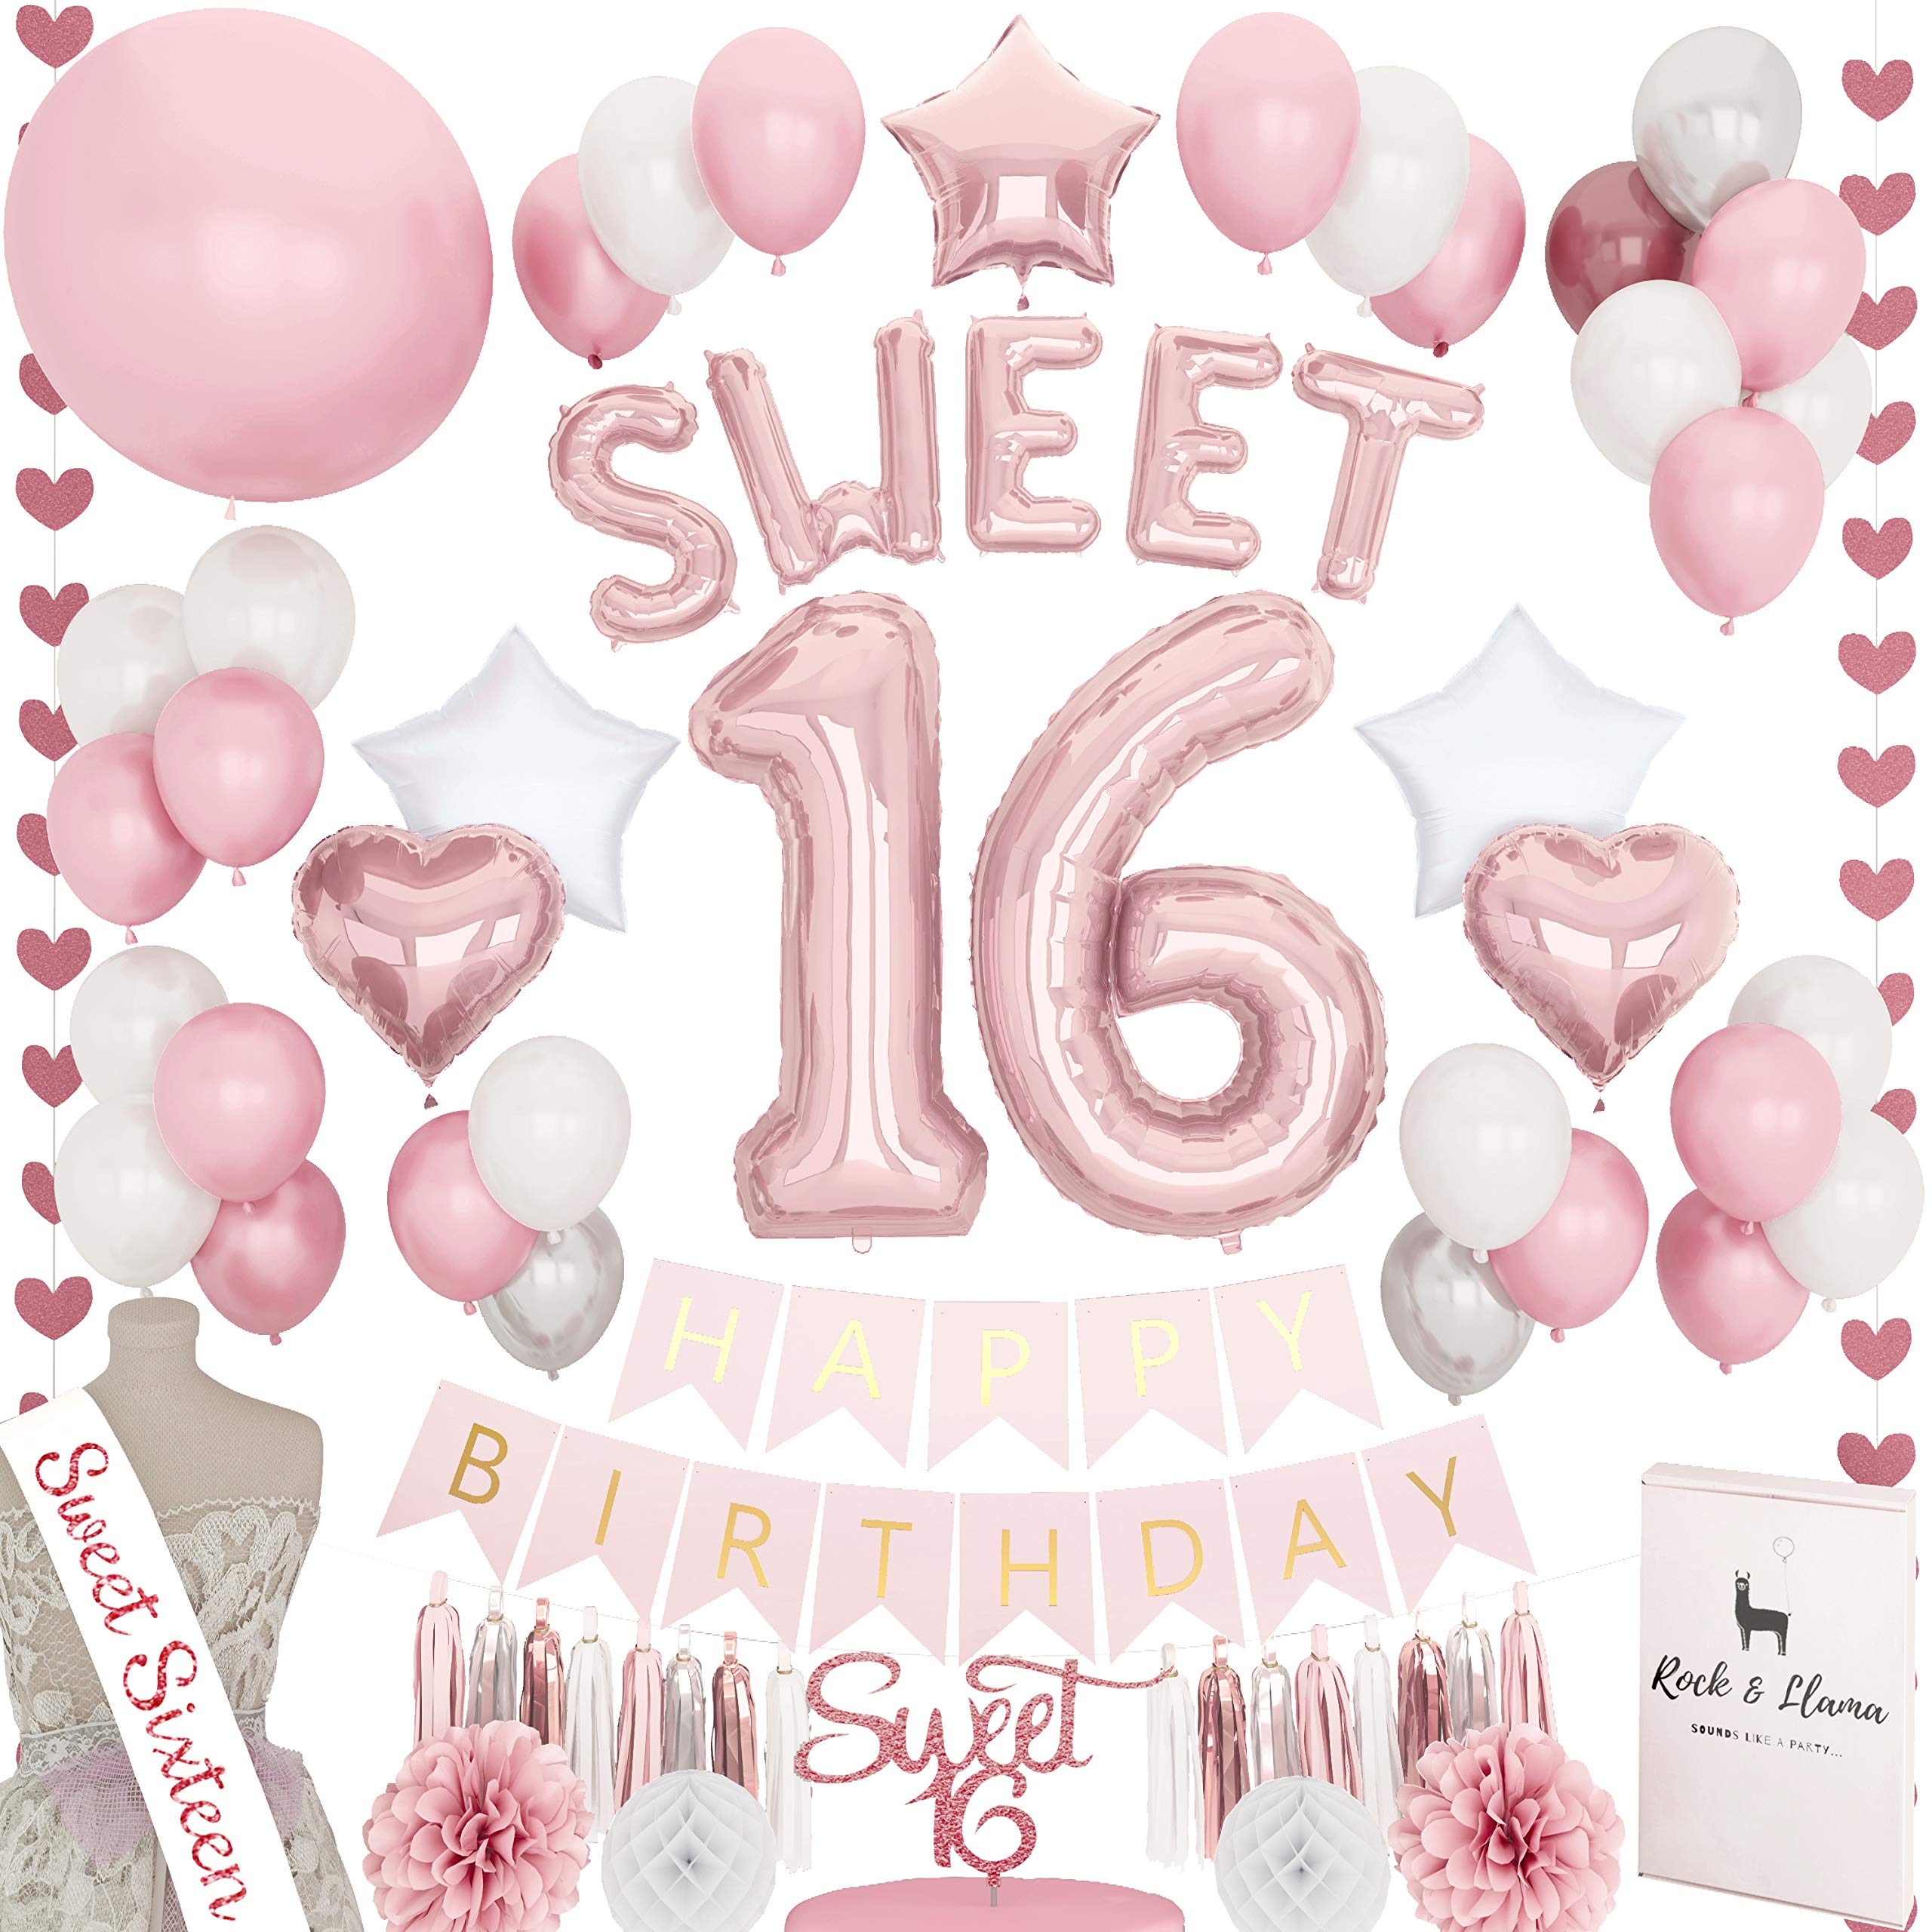 Stunning Sweet 16th Birthday Decorations Party Supplies + (SASH) + (SWEET Letter Balloons) + (Sixteen Cake Topper) | Rose Gold Pink Fuchsia 16 BDay | (71+ Items) by Rock and Llama